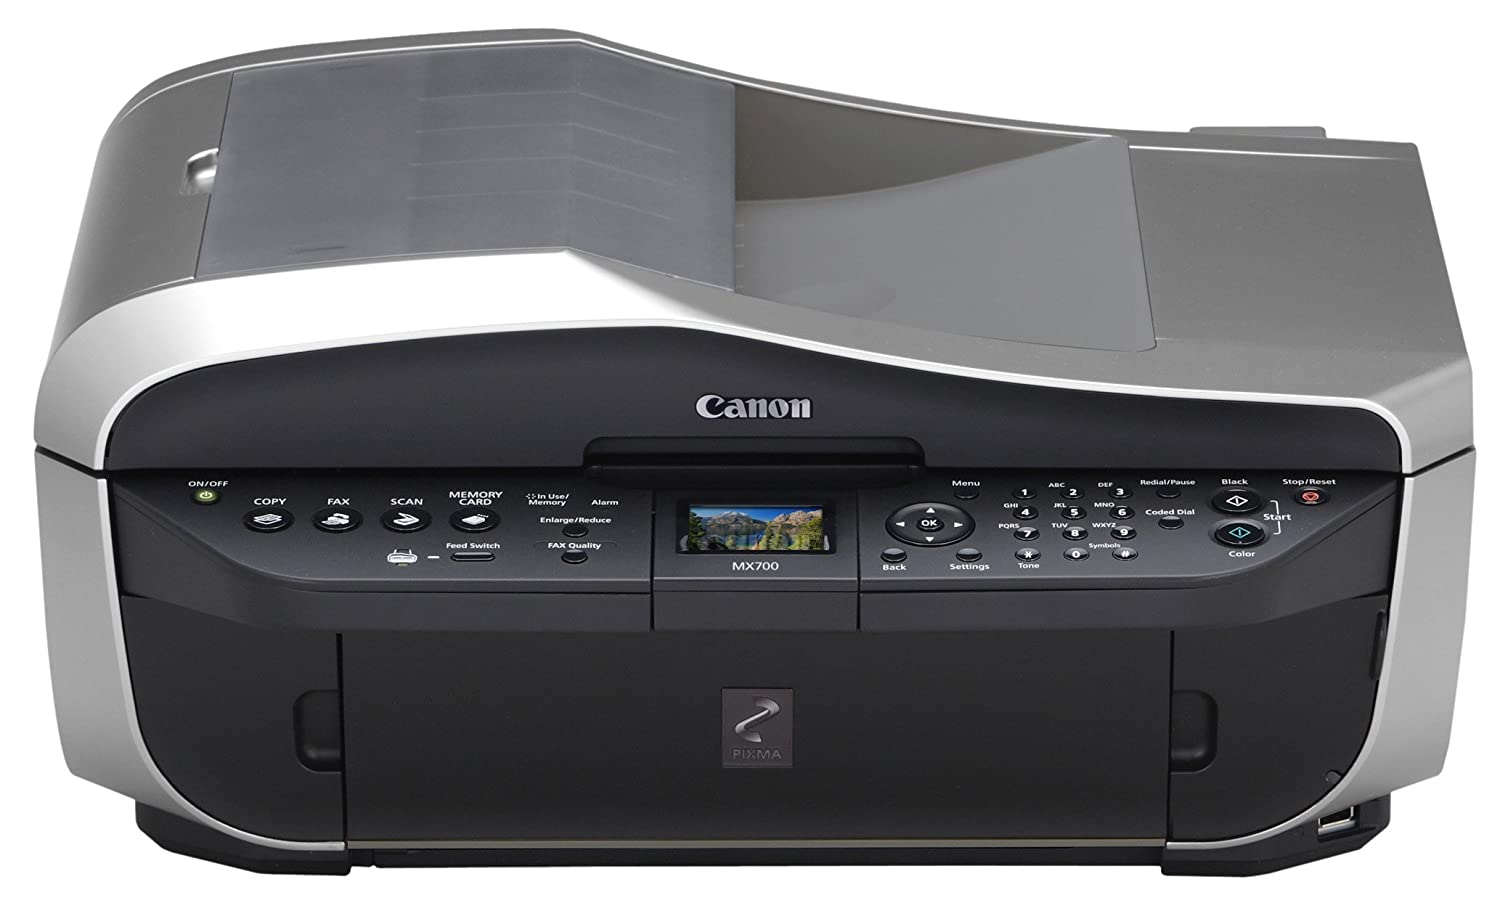 MX700 CANON PRINTER WINDOWS 7 DRIVERS DOWNLOAD